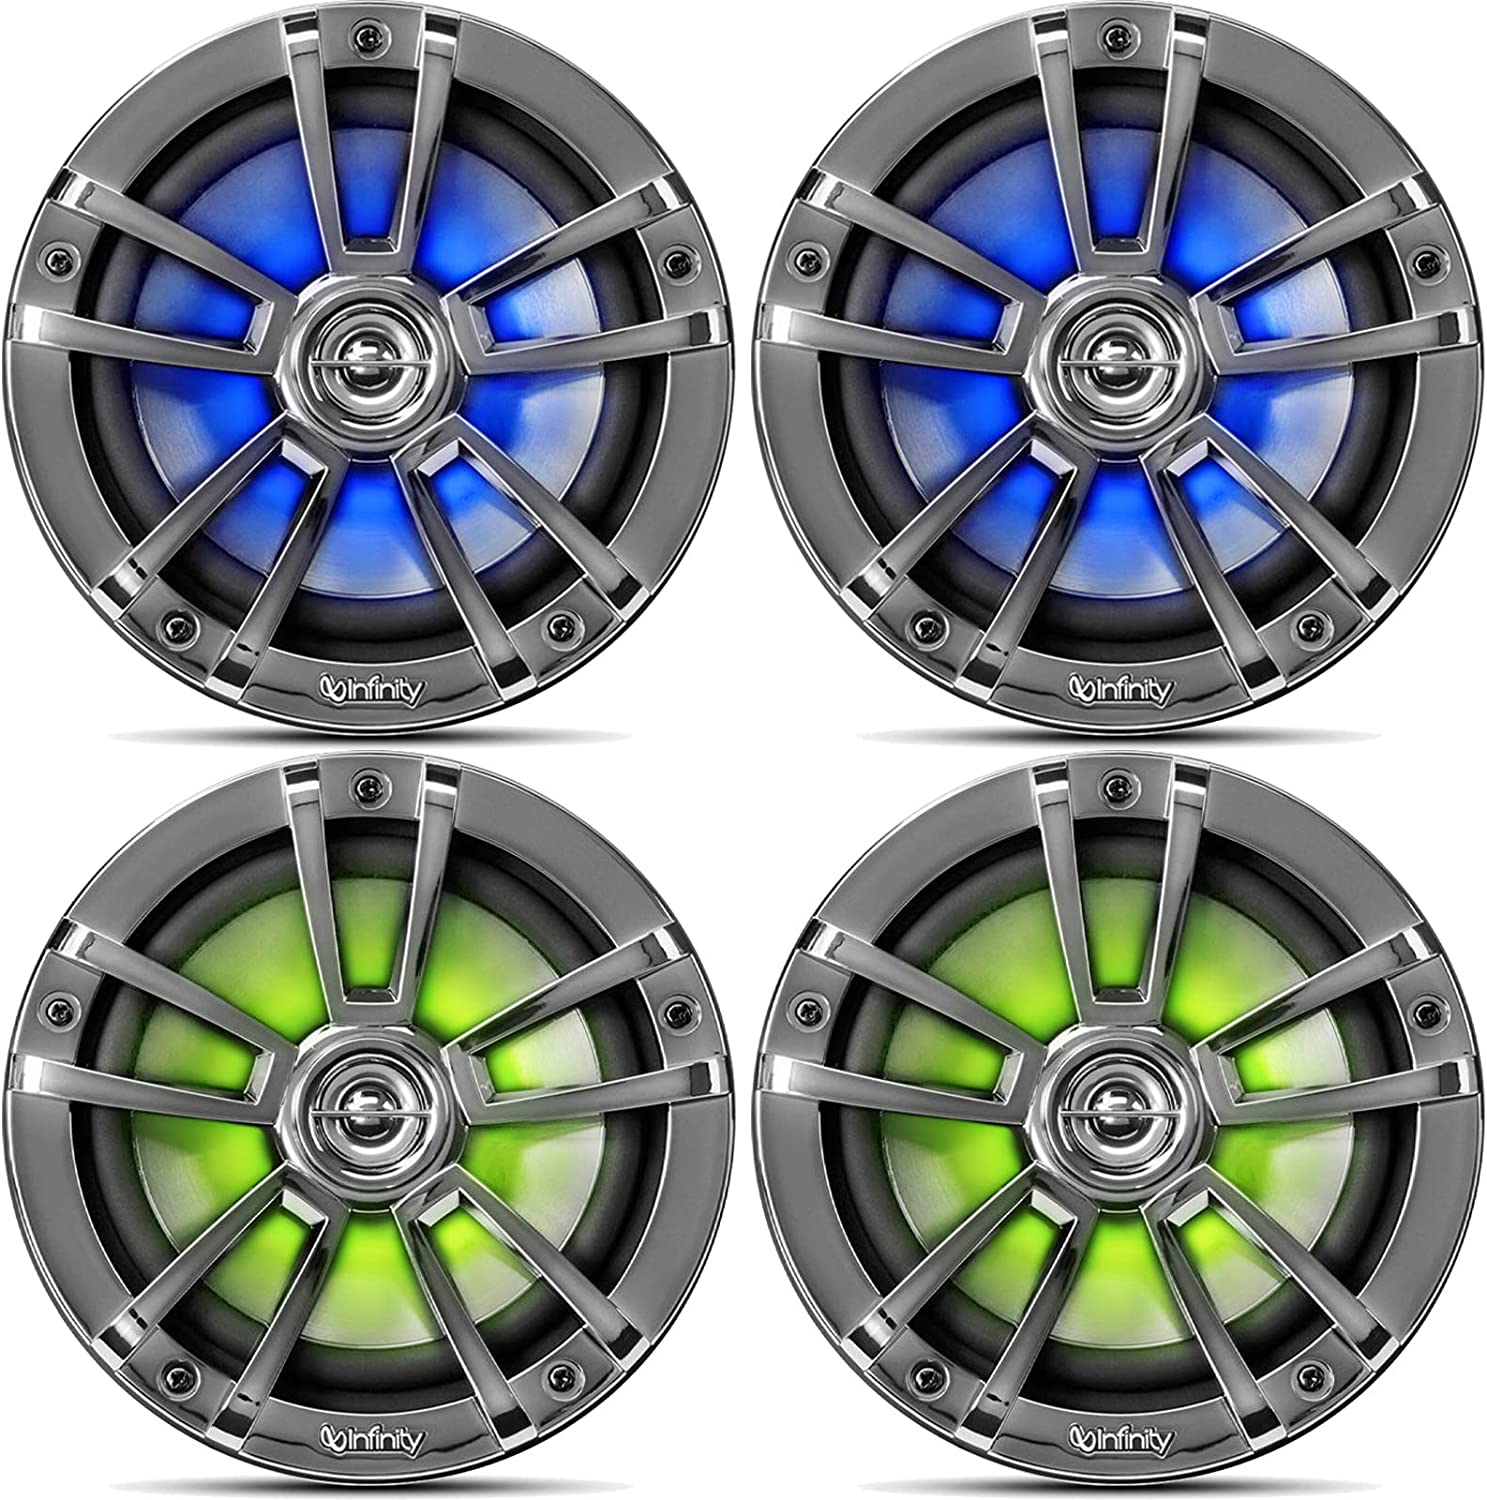 2 Pairs QTY 4 White of OEM Replacement 6.5 2-Way Coaxial Marine Audio Multi-Element Boat Speakers with Multi-Color RGB Lighting Option